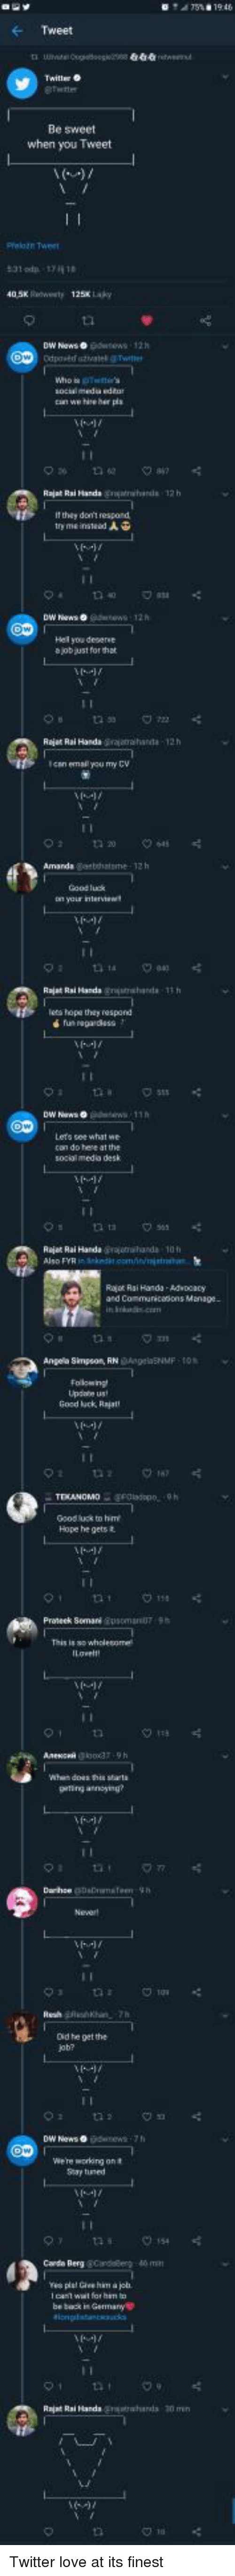 ghee: Tweet  Be sweet  when you Tweet  Pelon Twee  05Kety 125 Laky  can we hire her pis  Rajat Rai Hands grutwhands 12 h  If they donmt respond  try meinsteed  DW News o  you deserse  a job just for that  Rajet Rai Handa ajthata-12h  can emal you my CV  Amanda Gabhatme-12h  Good luck  your interve  Rajat Rai Handa gijuthnda 1h  lets hope they respond  DW News  Lets see what we  Rajet Rai Handa rjhd 10h  Rajor Rai Hands-AdwDoacy  and Communicaions Manage  Angela Simpeon, RNeNMF TO  Updabe us  Good luck Rajat  Goodluck to  Hope he gets t  Semani Gpsoma  This is so wholesome  gerting anneying?  Oid he get the  job?  DW News o  We're woring on t  Say tiuned  Carde Berg @cirdee  40 m  pist Ghee him a joh  be back in Garman  Rajat Rai Handshards 30 m Twitter love at its finest